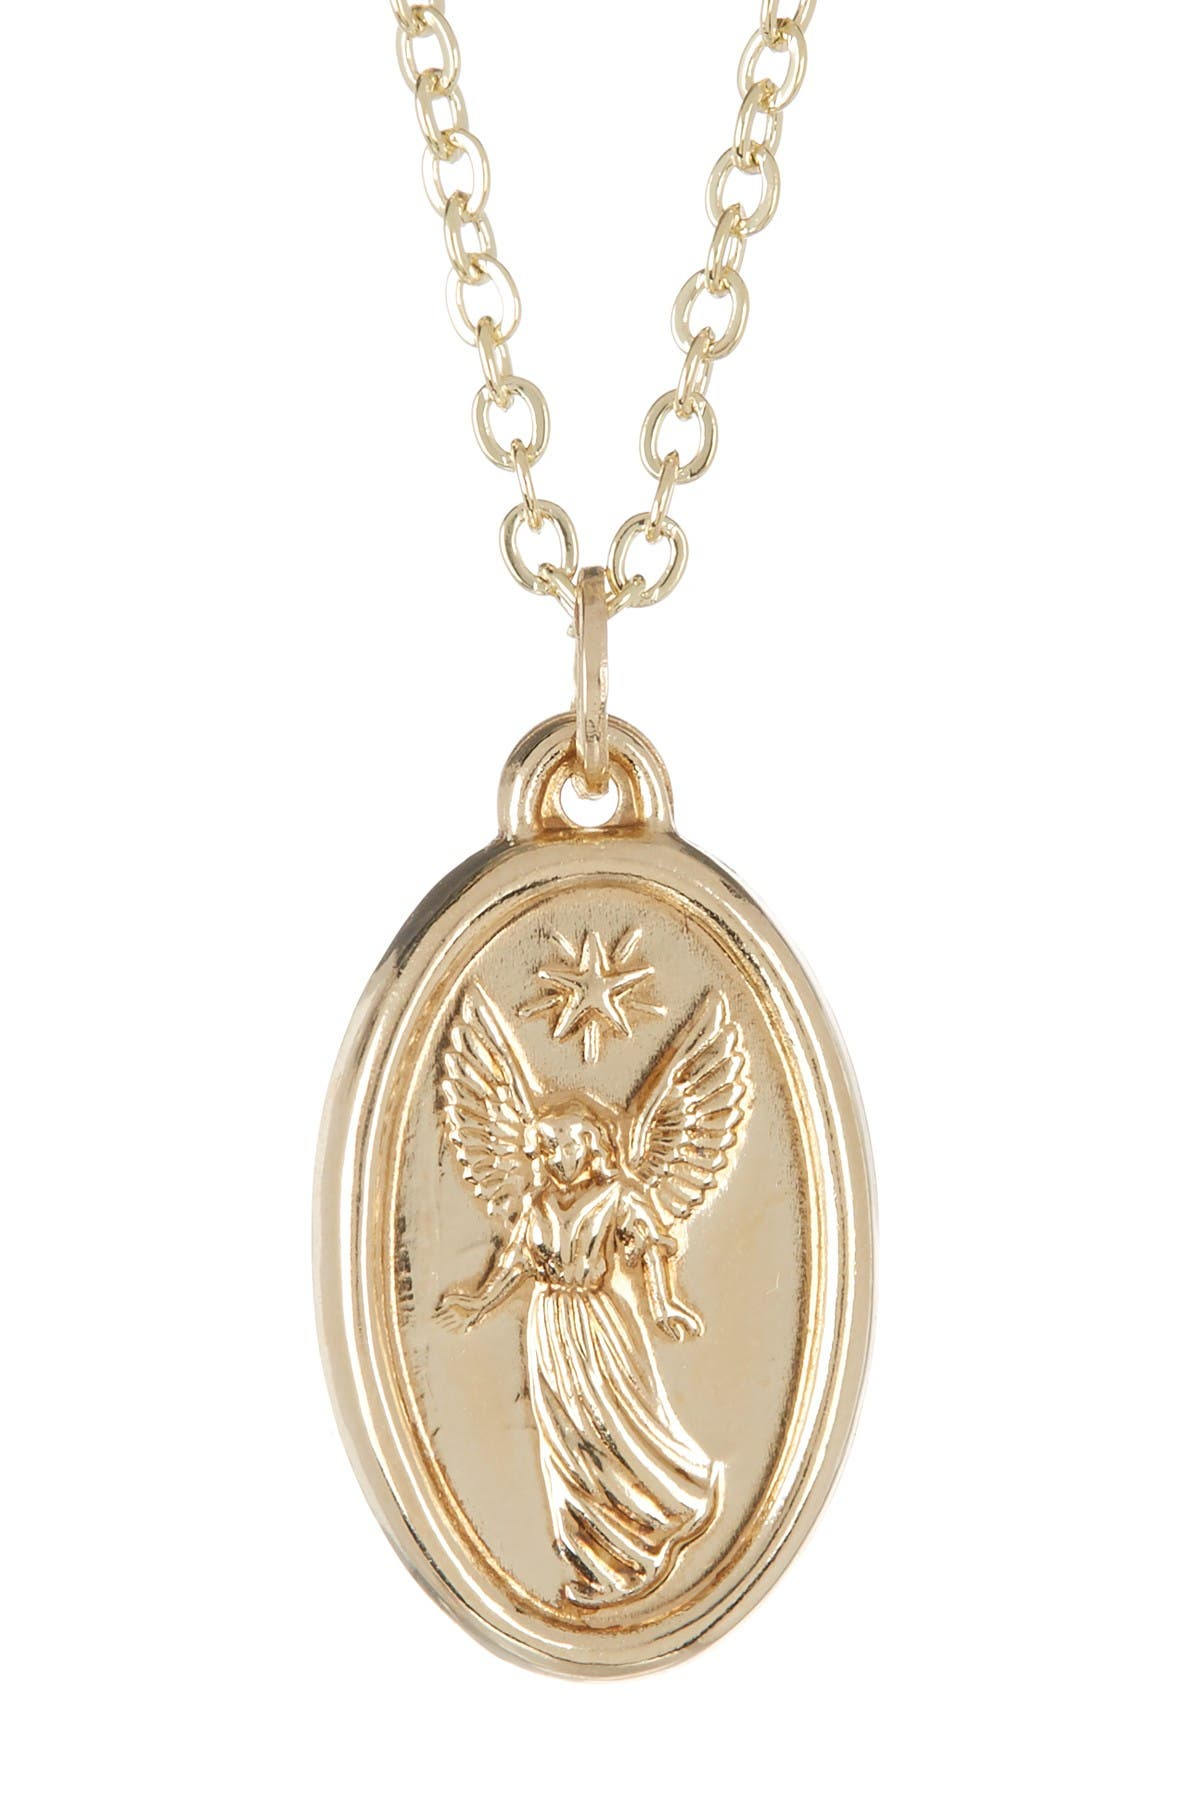 Image of Best Silver Inc. 14K Yellow Gold Oval Angel Medallion Necklace